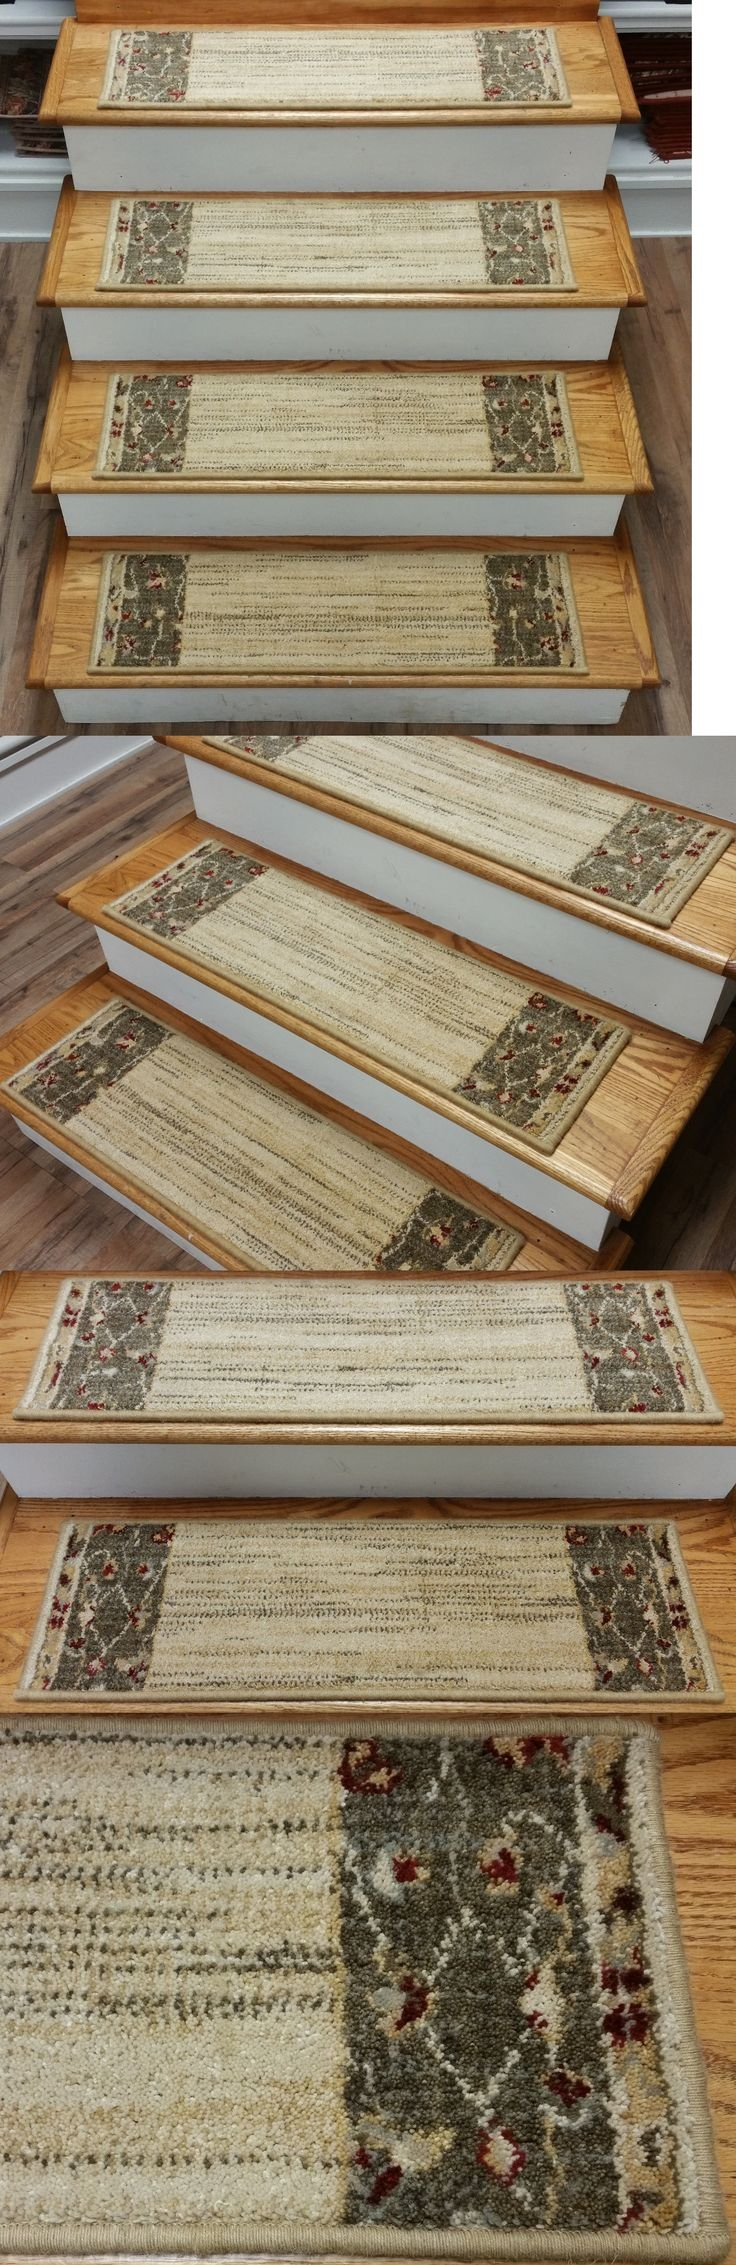 Top 25 Best Carpet Stair Treads Ideas On Pinterest Wood Stair With Regard To Wool Carpet Stair Treads (#20 of 20)